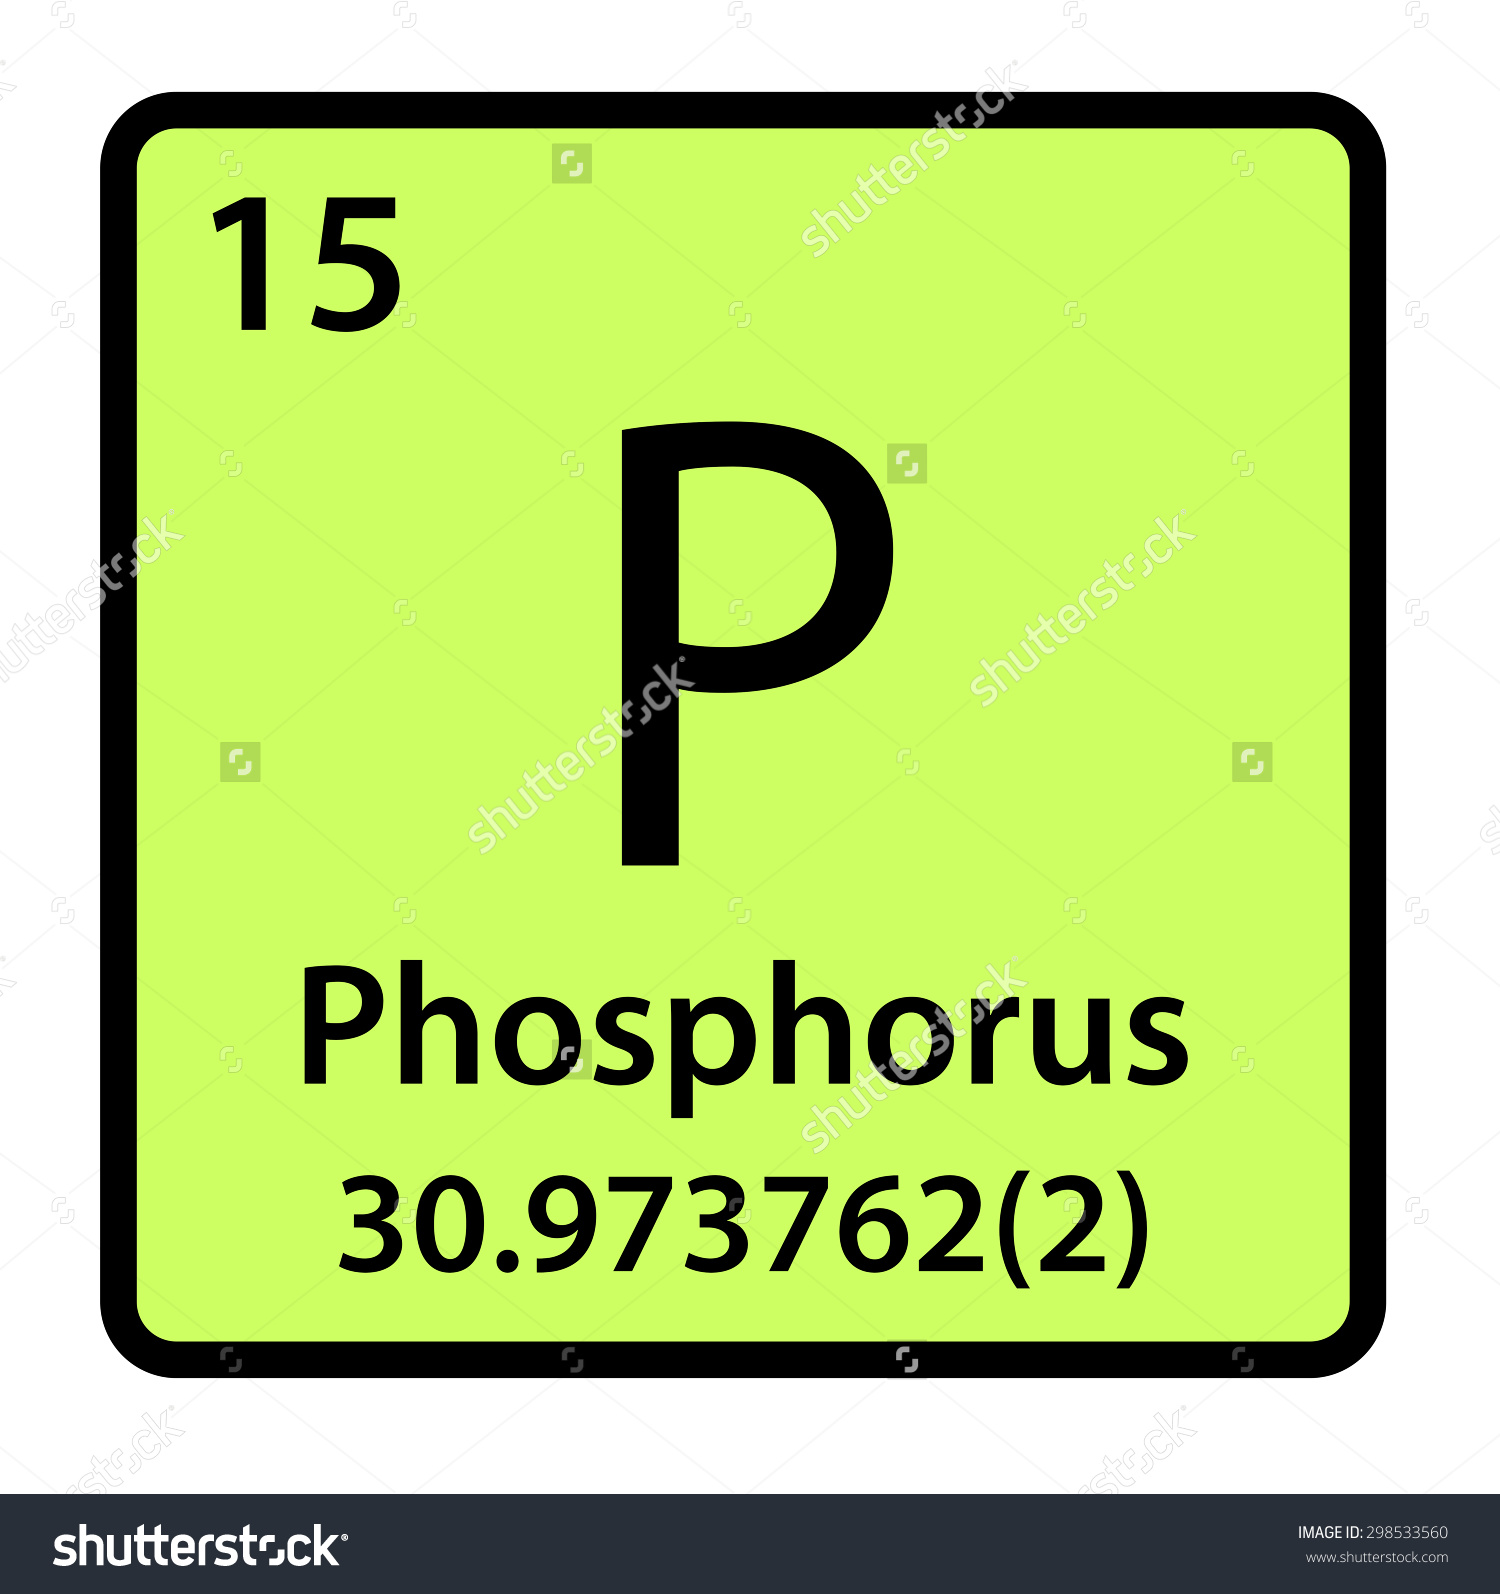 an introduction to the chemical element phosphorus Introduction the global phosphorus cycle has four major components: (i)  in turn, strongly influences the concentration and chemical form of phosphorus incorporated into the geological record  phosphorus is the tenth most abundant element on earth, with an average crustal abundance of 01% by weight.